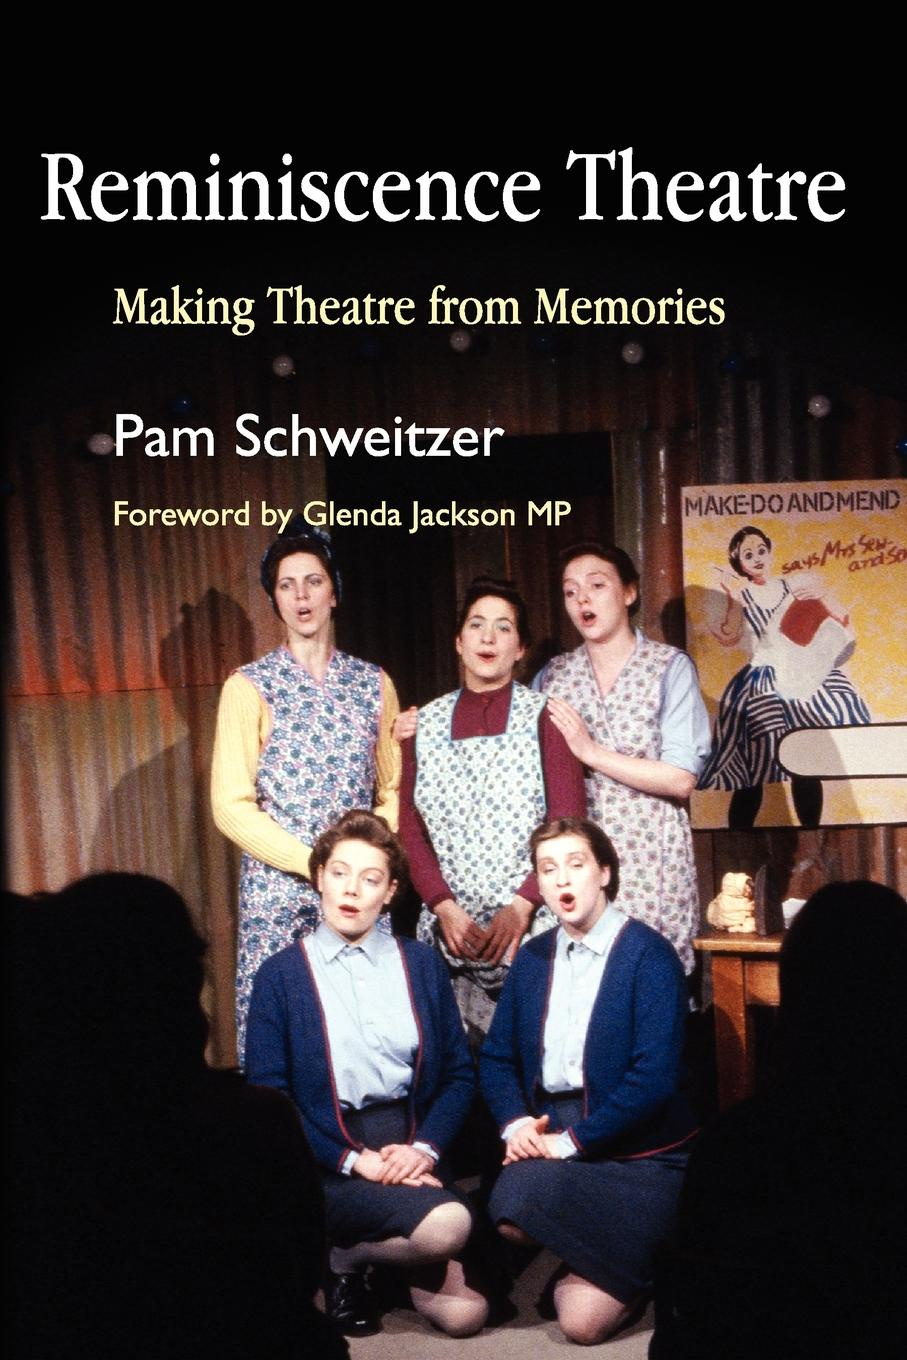 Reminiscence Theatre. Making Theatre from Memories